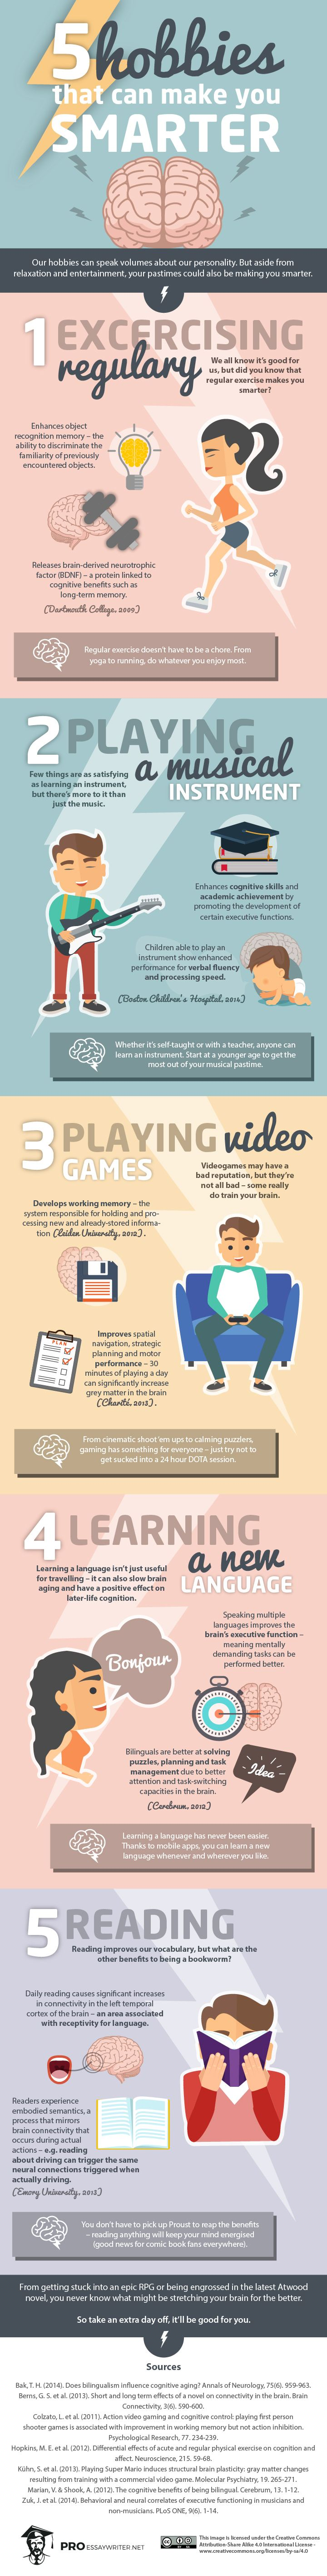 Infographic: Five Hobbies That Can Make You Smarter - DesignTAXI.com